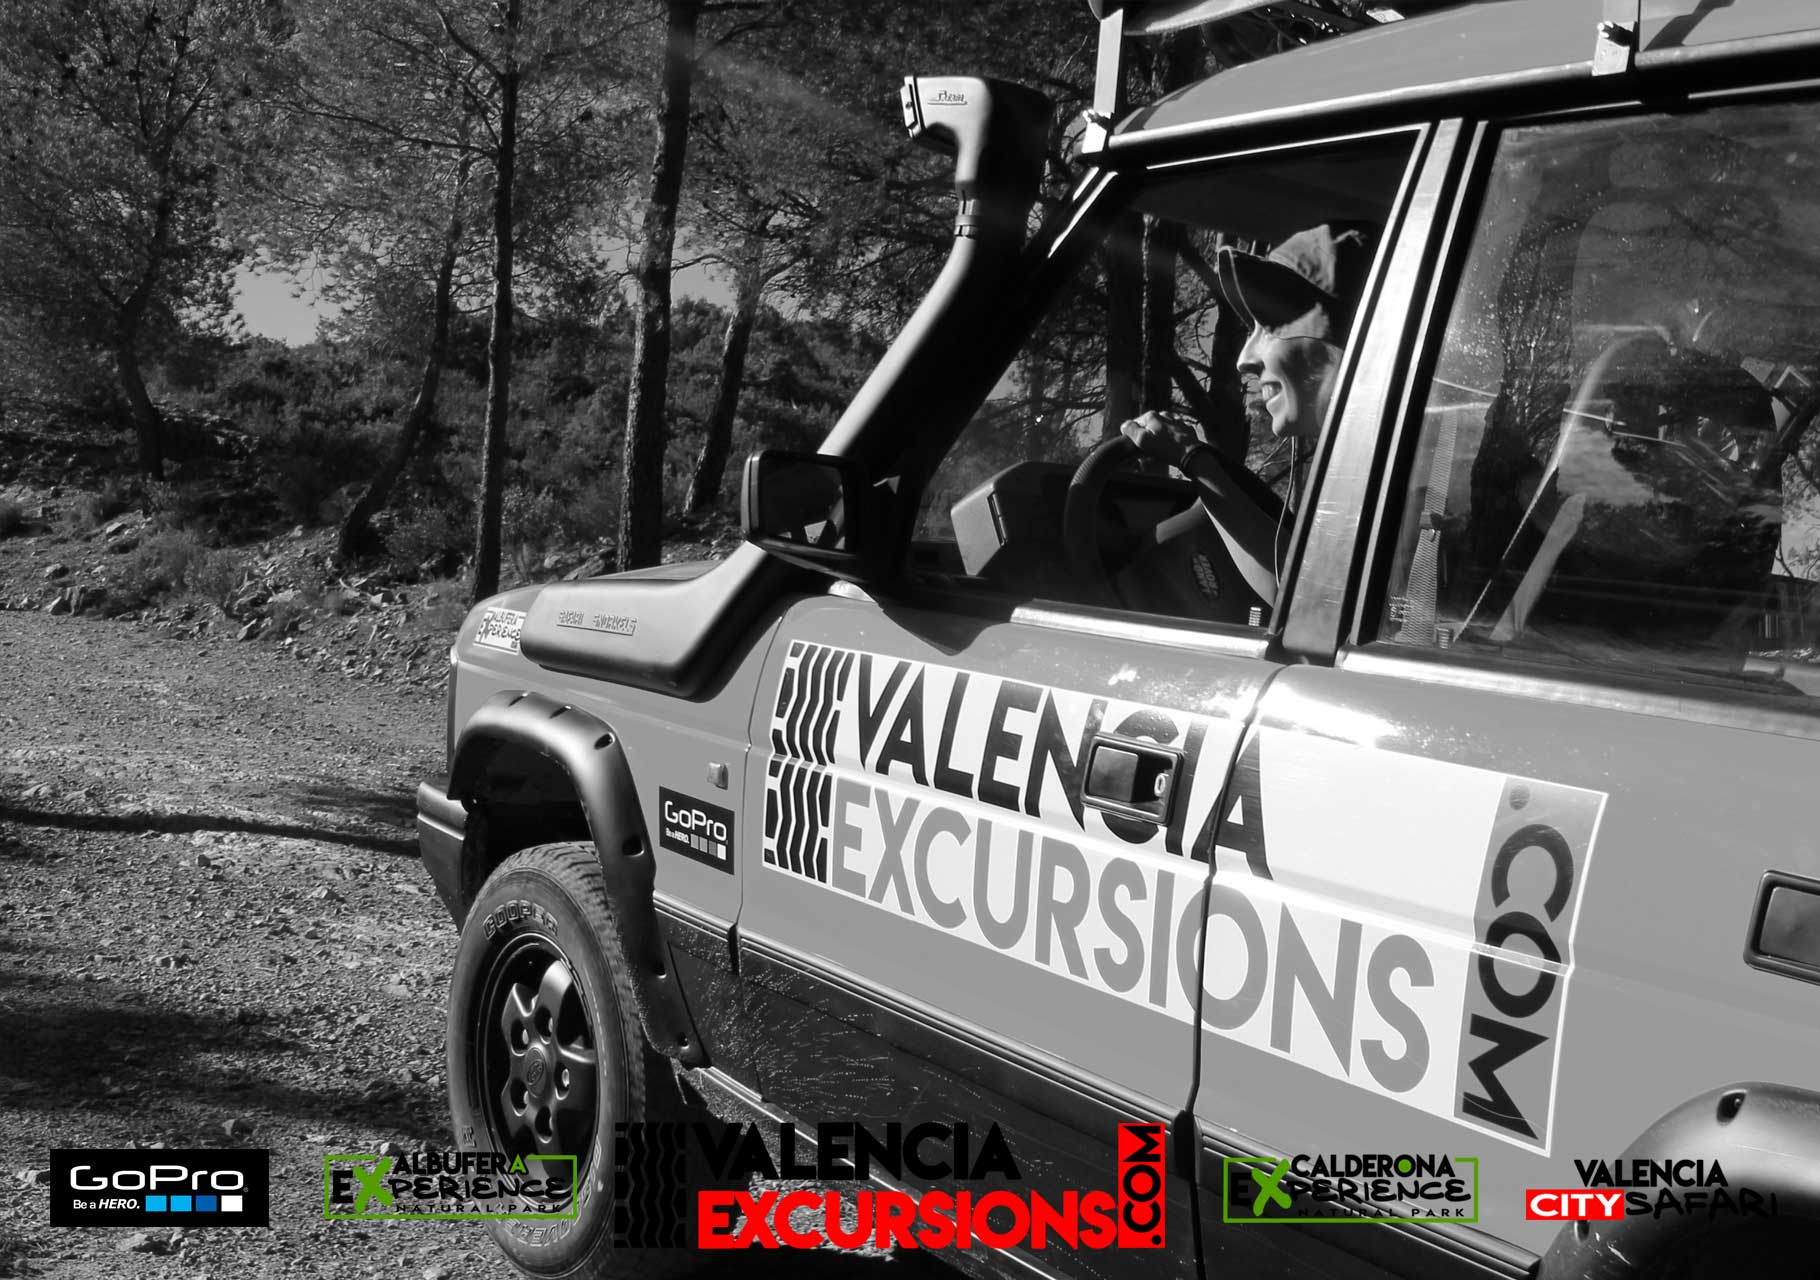 Sierra Calderona jeep adventure in Valencia. Offroad guided tour excursions with Valencia Excursions